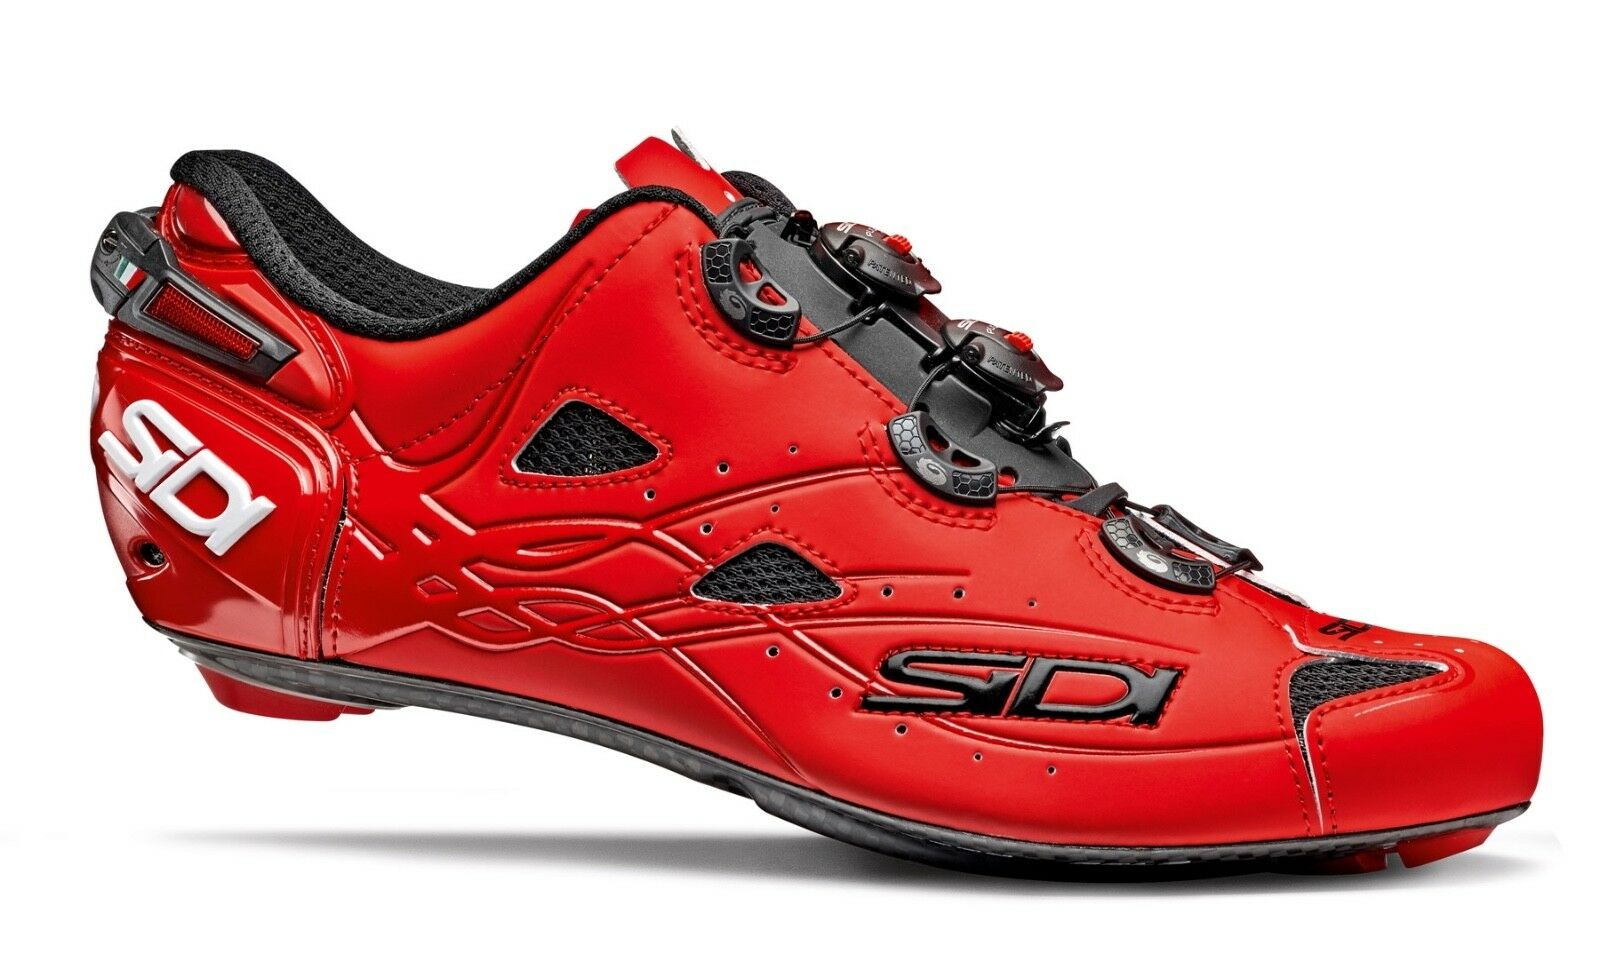 shoes SIDI SHOT red OPACO Size 45.5